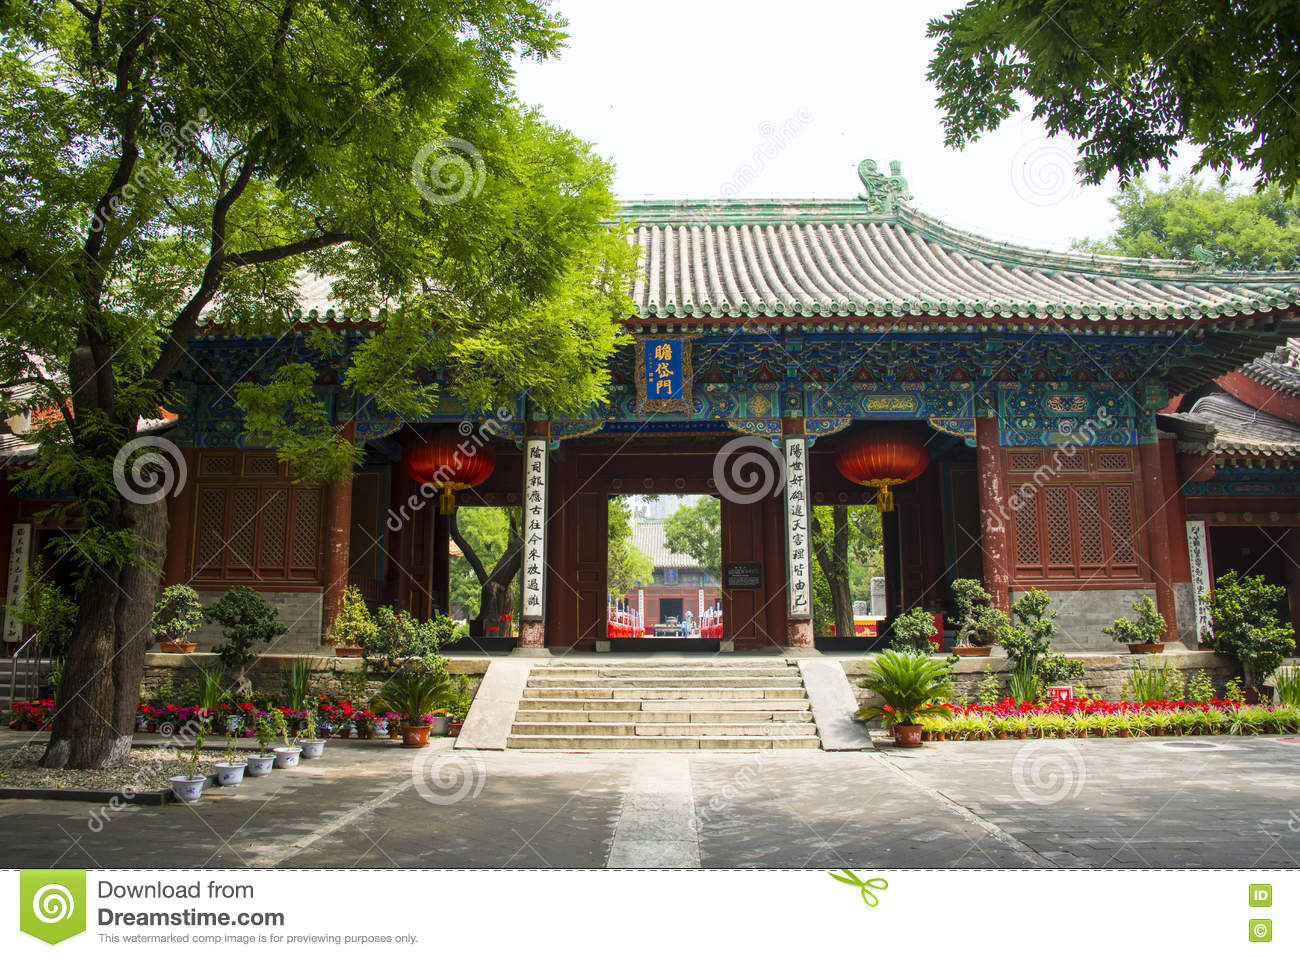 Awesome Asia China, Beijing, Dongyue Temple, Landscape Architecture, Palace Hall, Design